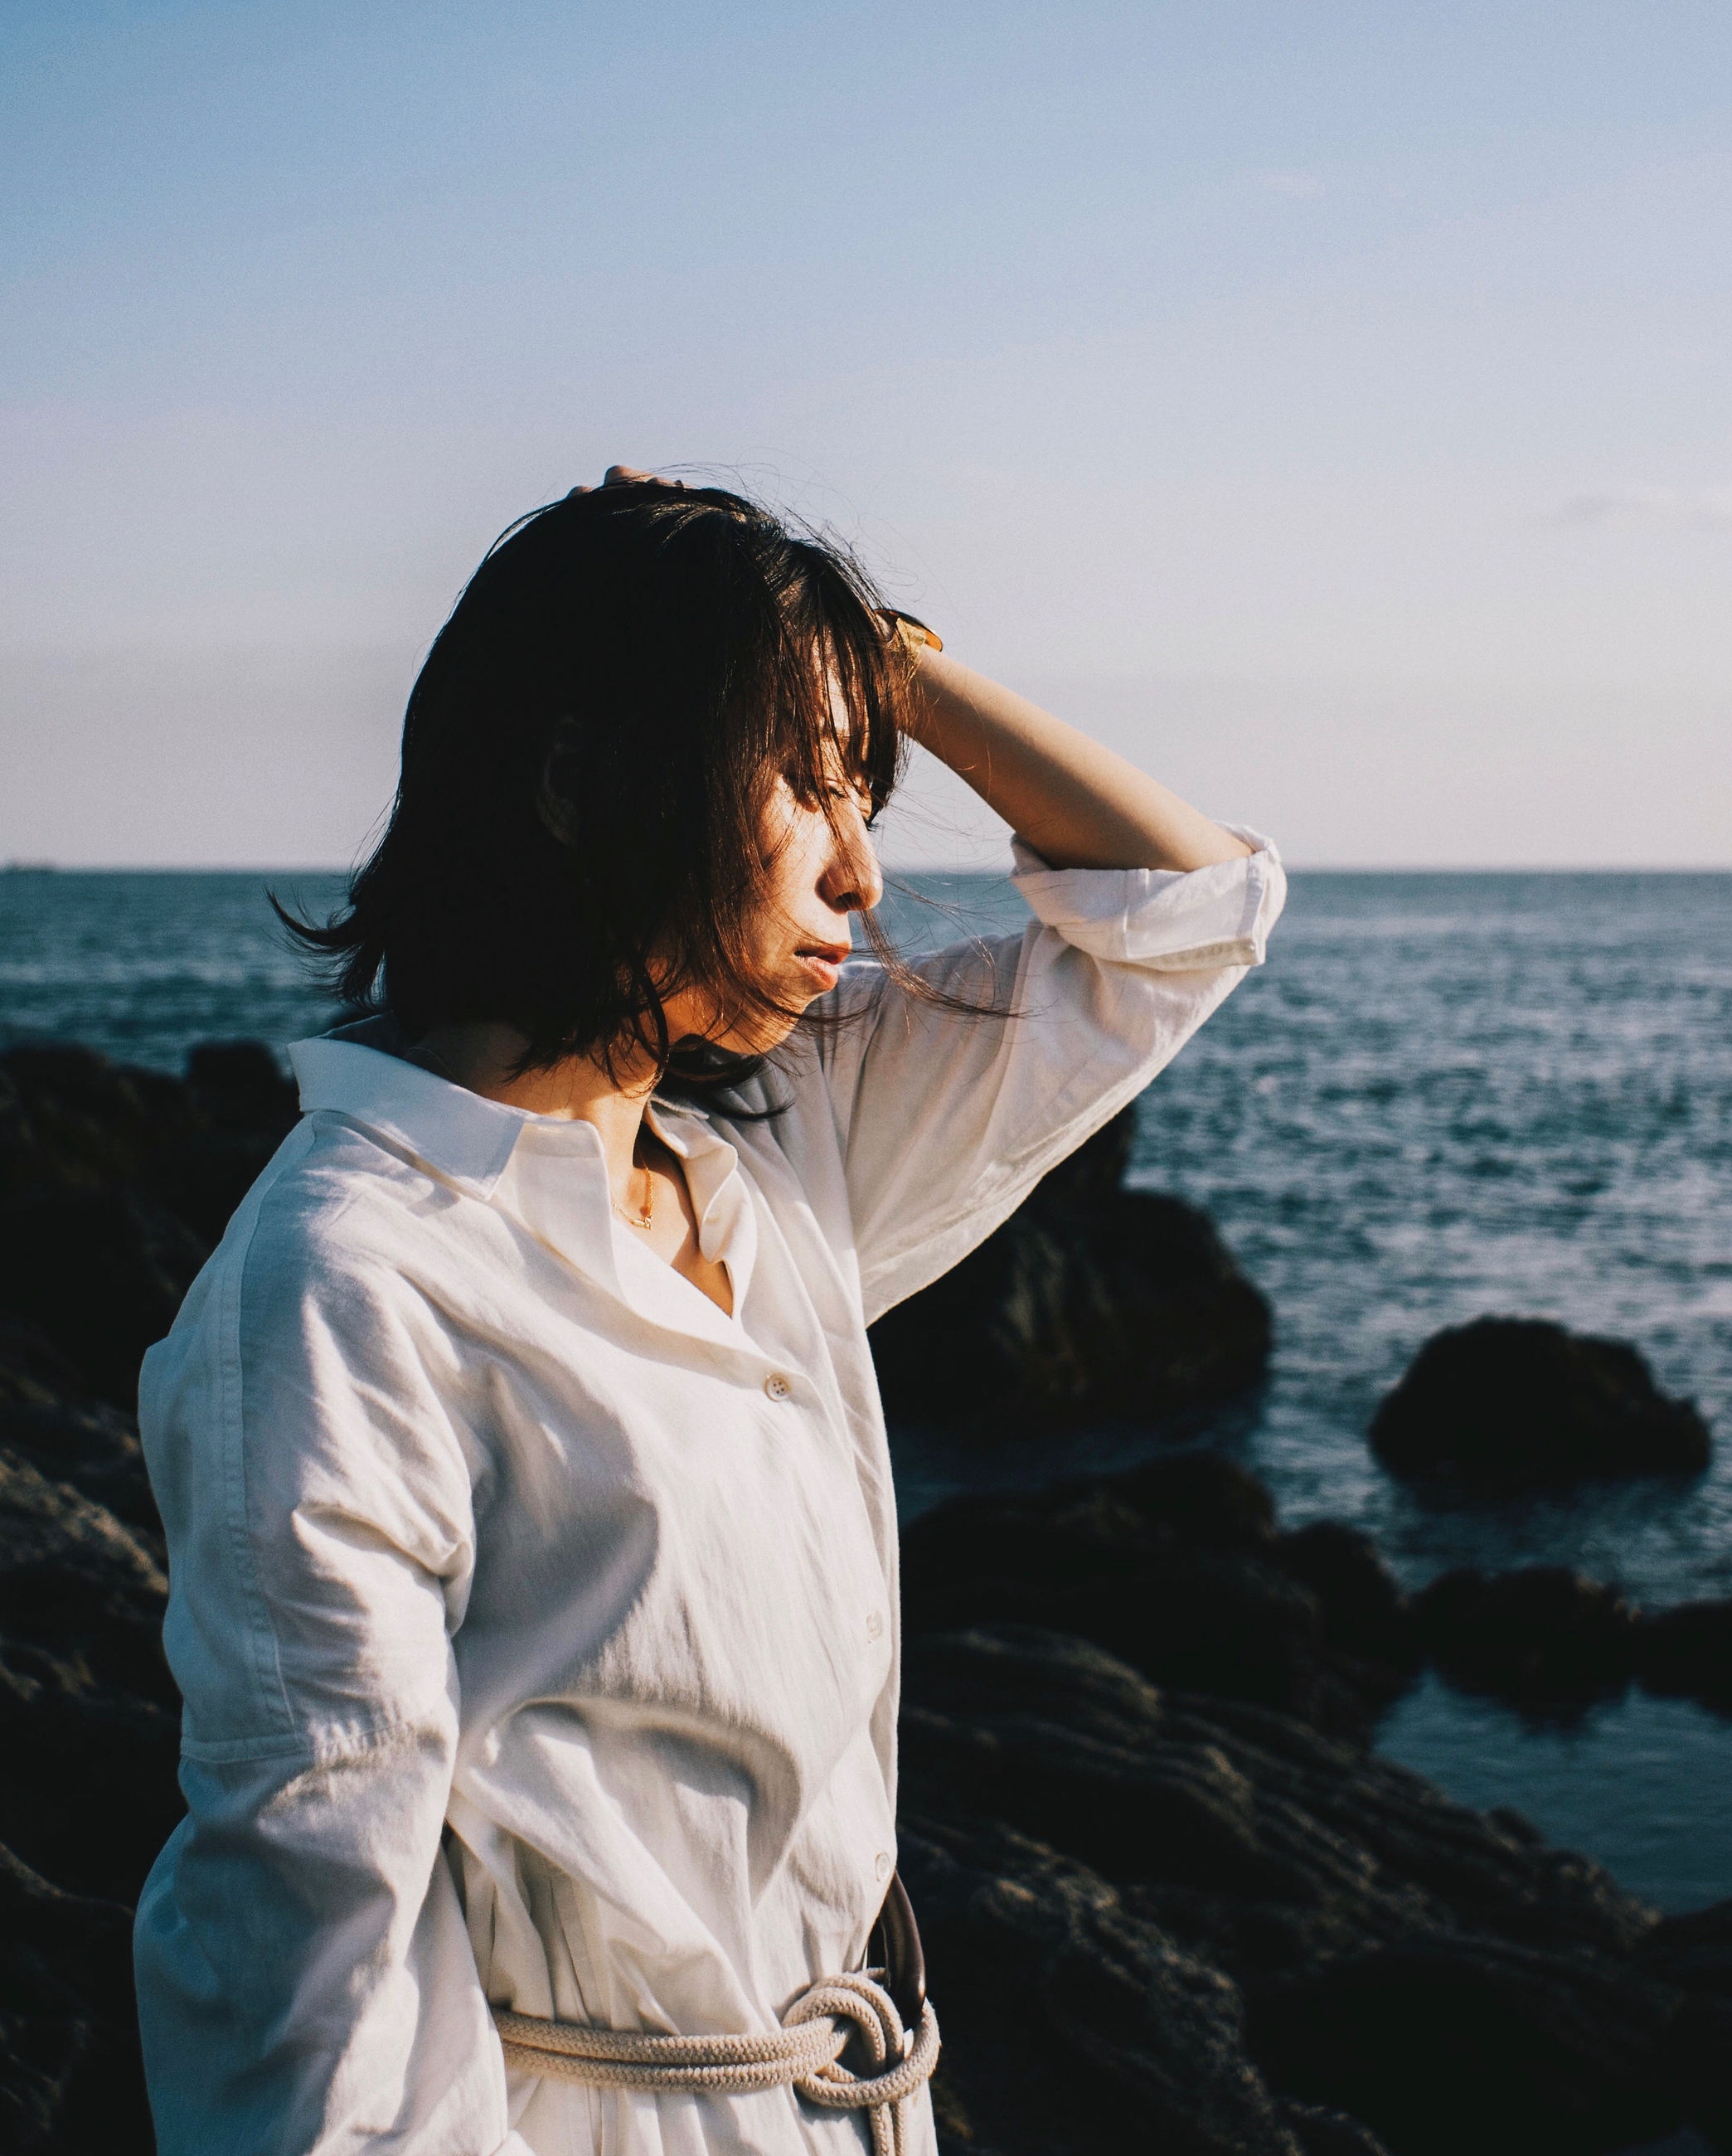 water, sea, sky, real people, leisure activity, lifestyles, beauty in nature, one person, nature, scenics - nature, horizon over water, adult, horizon, standing, women, casual clothing, rear view, land, hairstyle, outdoors, human arm